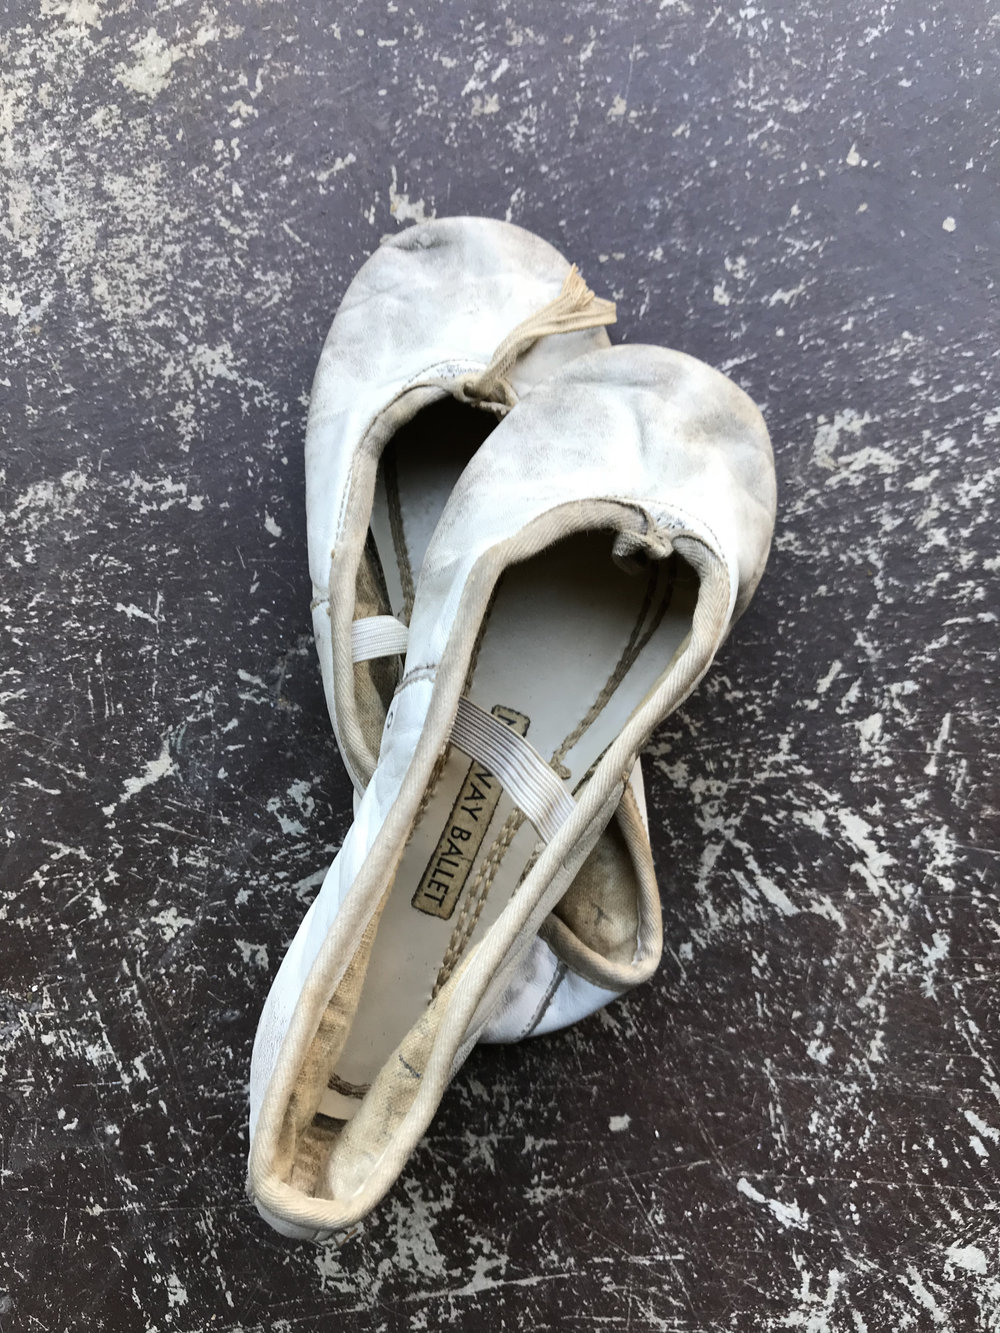 These were first. I was two years old when I first slipped them on. I didn't yet know right from left so they were perfect.    In time, ballet turned to track, slippers tossed for track shoes. Every athlete begins somewhere. That somewhere is the place you keep returning to, to regain your foundation, balance, strength. For years, for me, this foundation had always been ballet. If my speed was slack, I'd return to ballet. If my finesse was off, I returned to ballet. Until I stepped into yoga, and then yoga became ground zero.   What's your ground zero?  What brings you back to center?